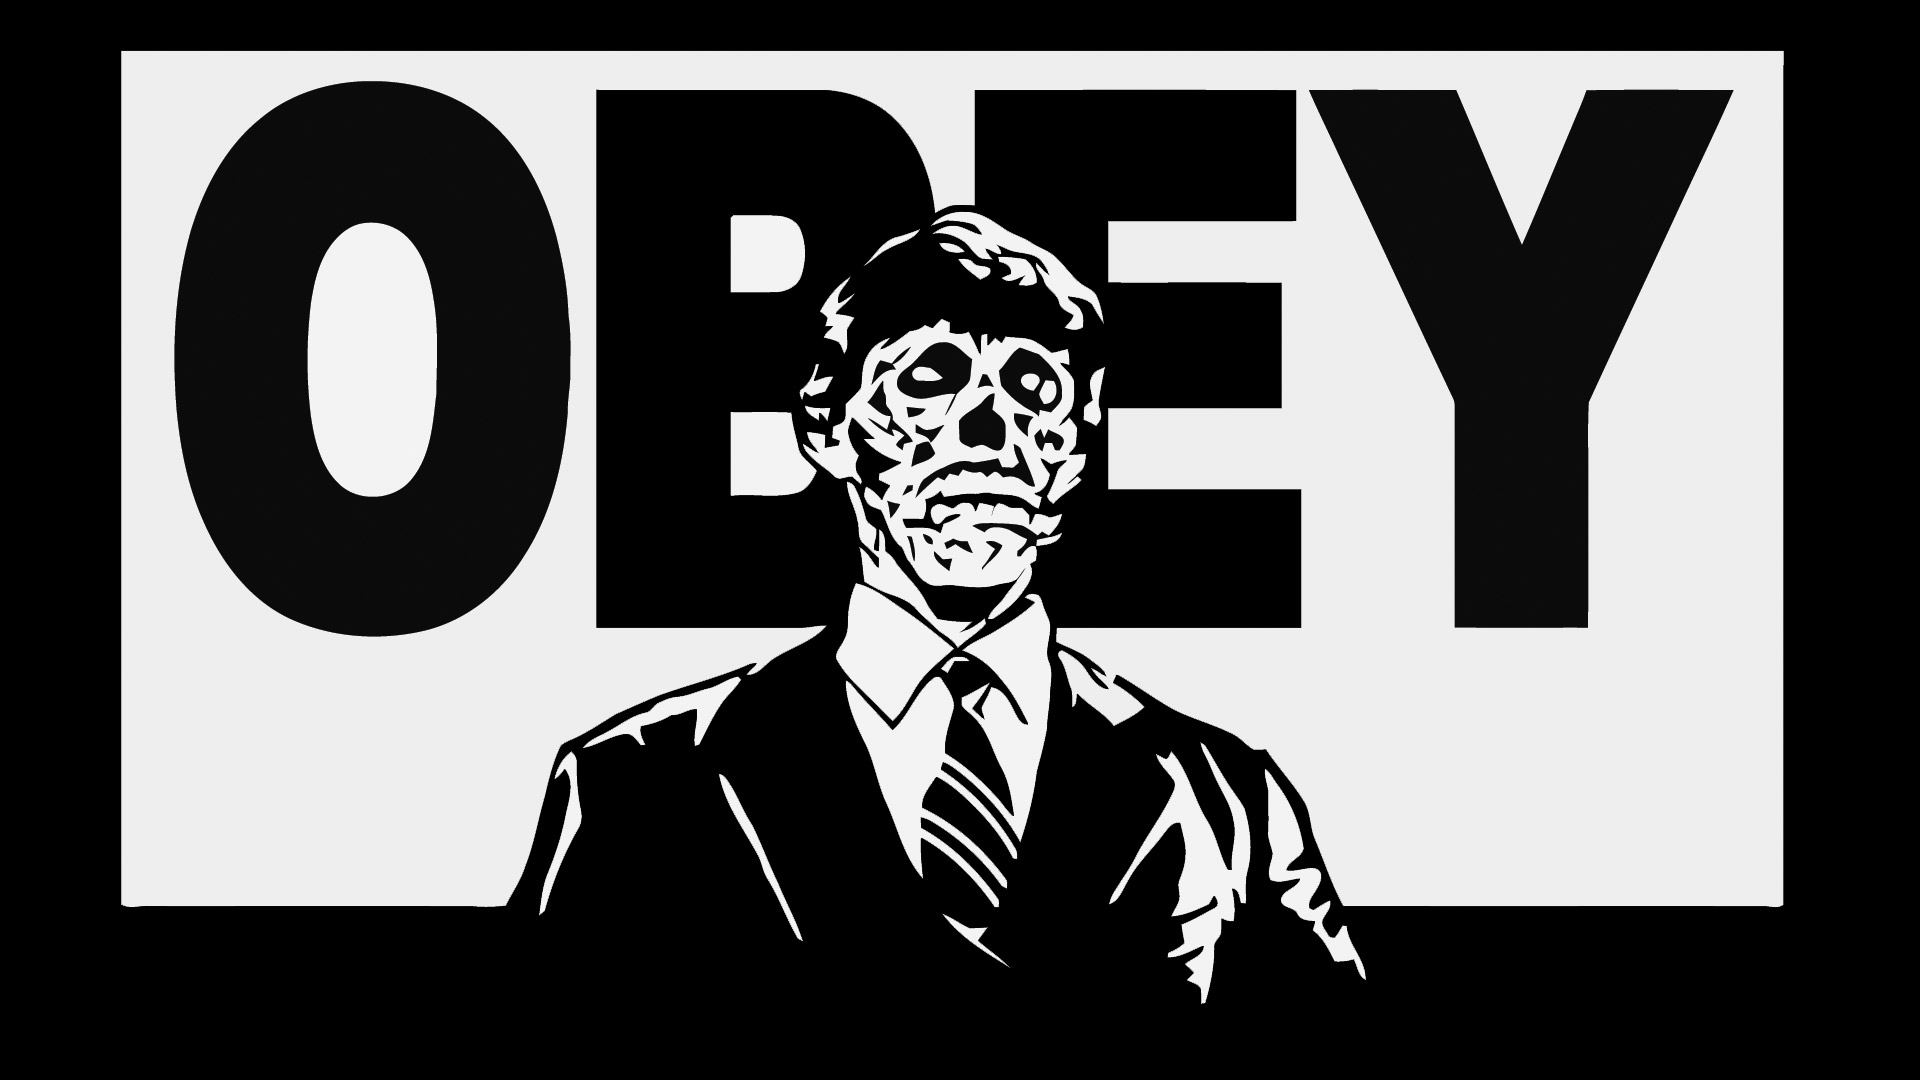 obey by carpenter